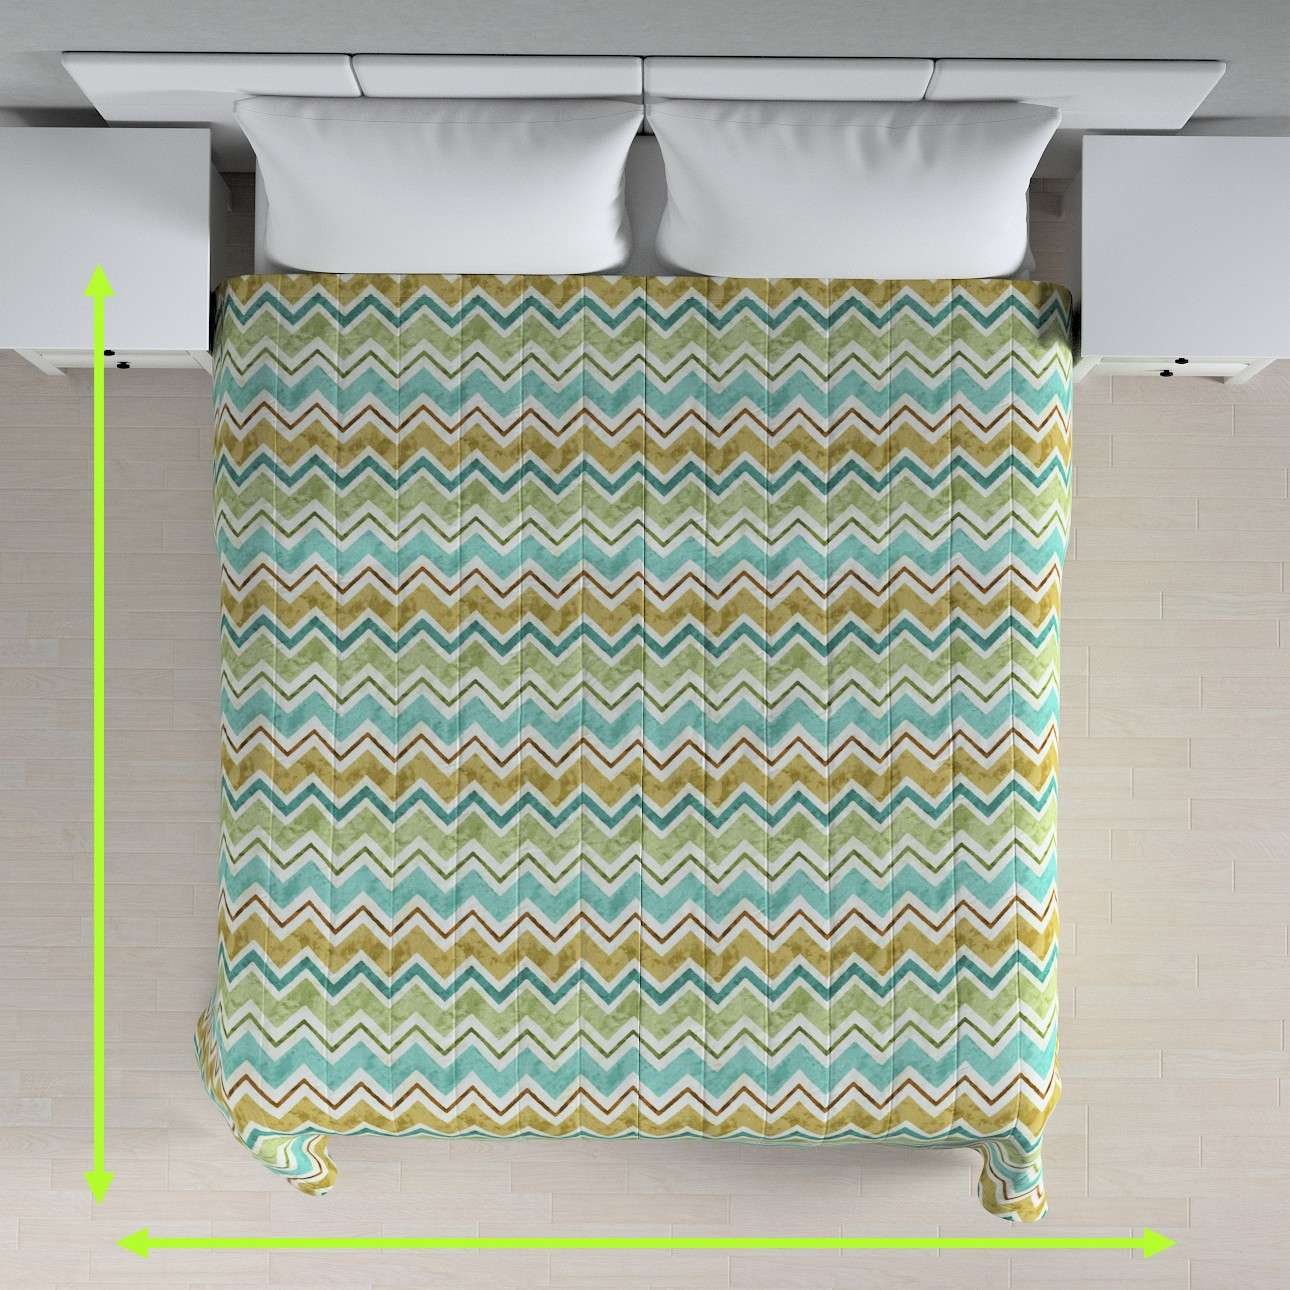 Quilted throw (vertical quilt pattern) in collection Acapulco, fabric: 141-41